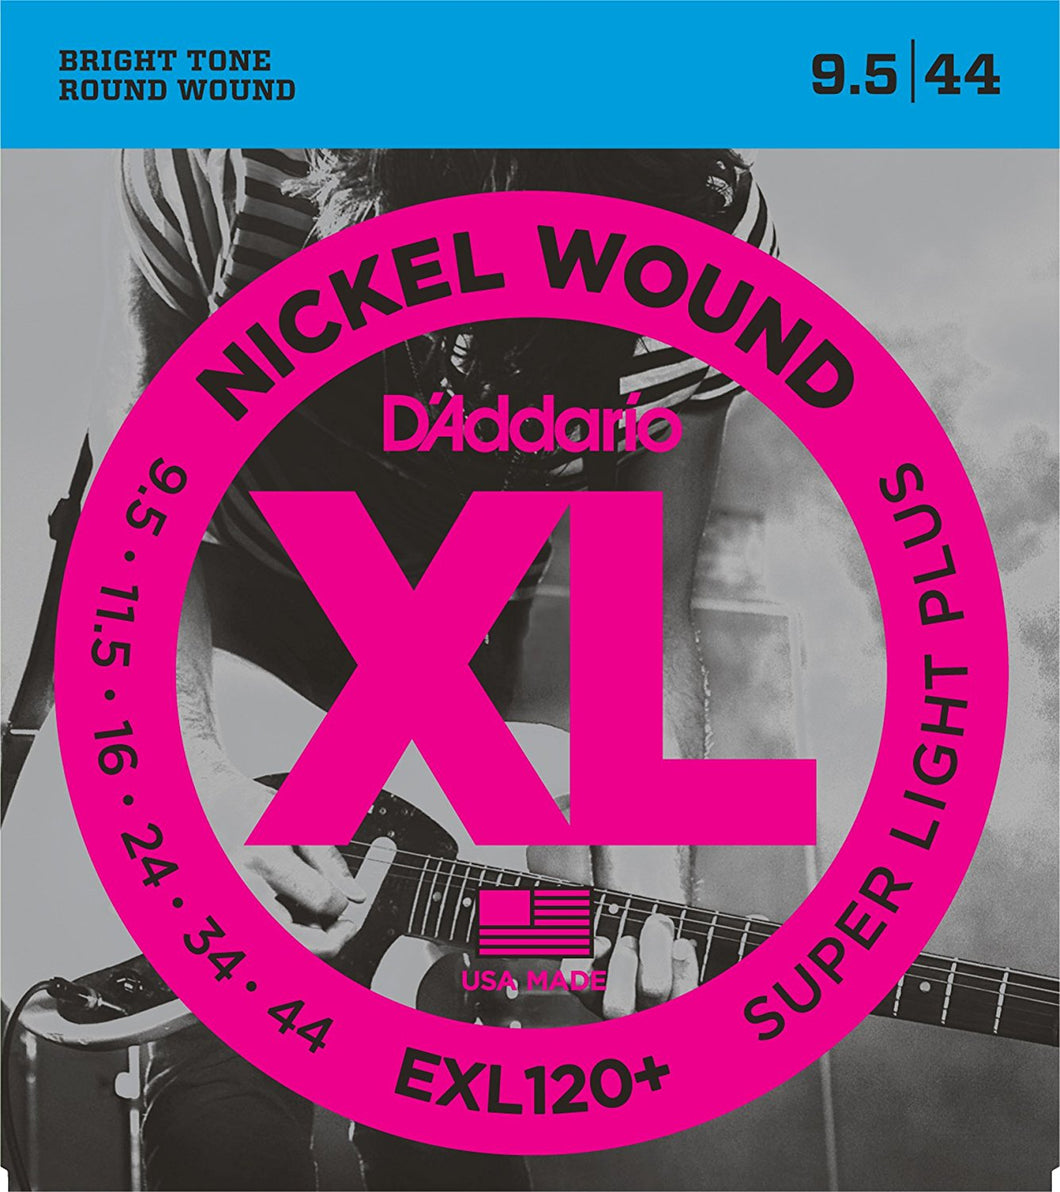 D'Addario Super Light Plus .0095-.044 EXL120+ Nickel Wound Electric Guitar Strings